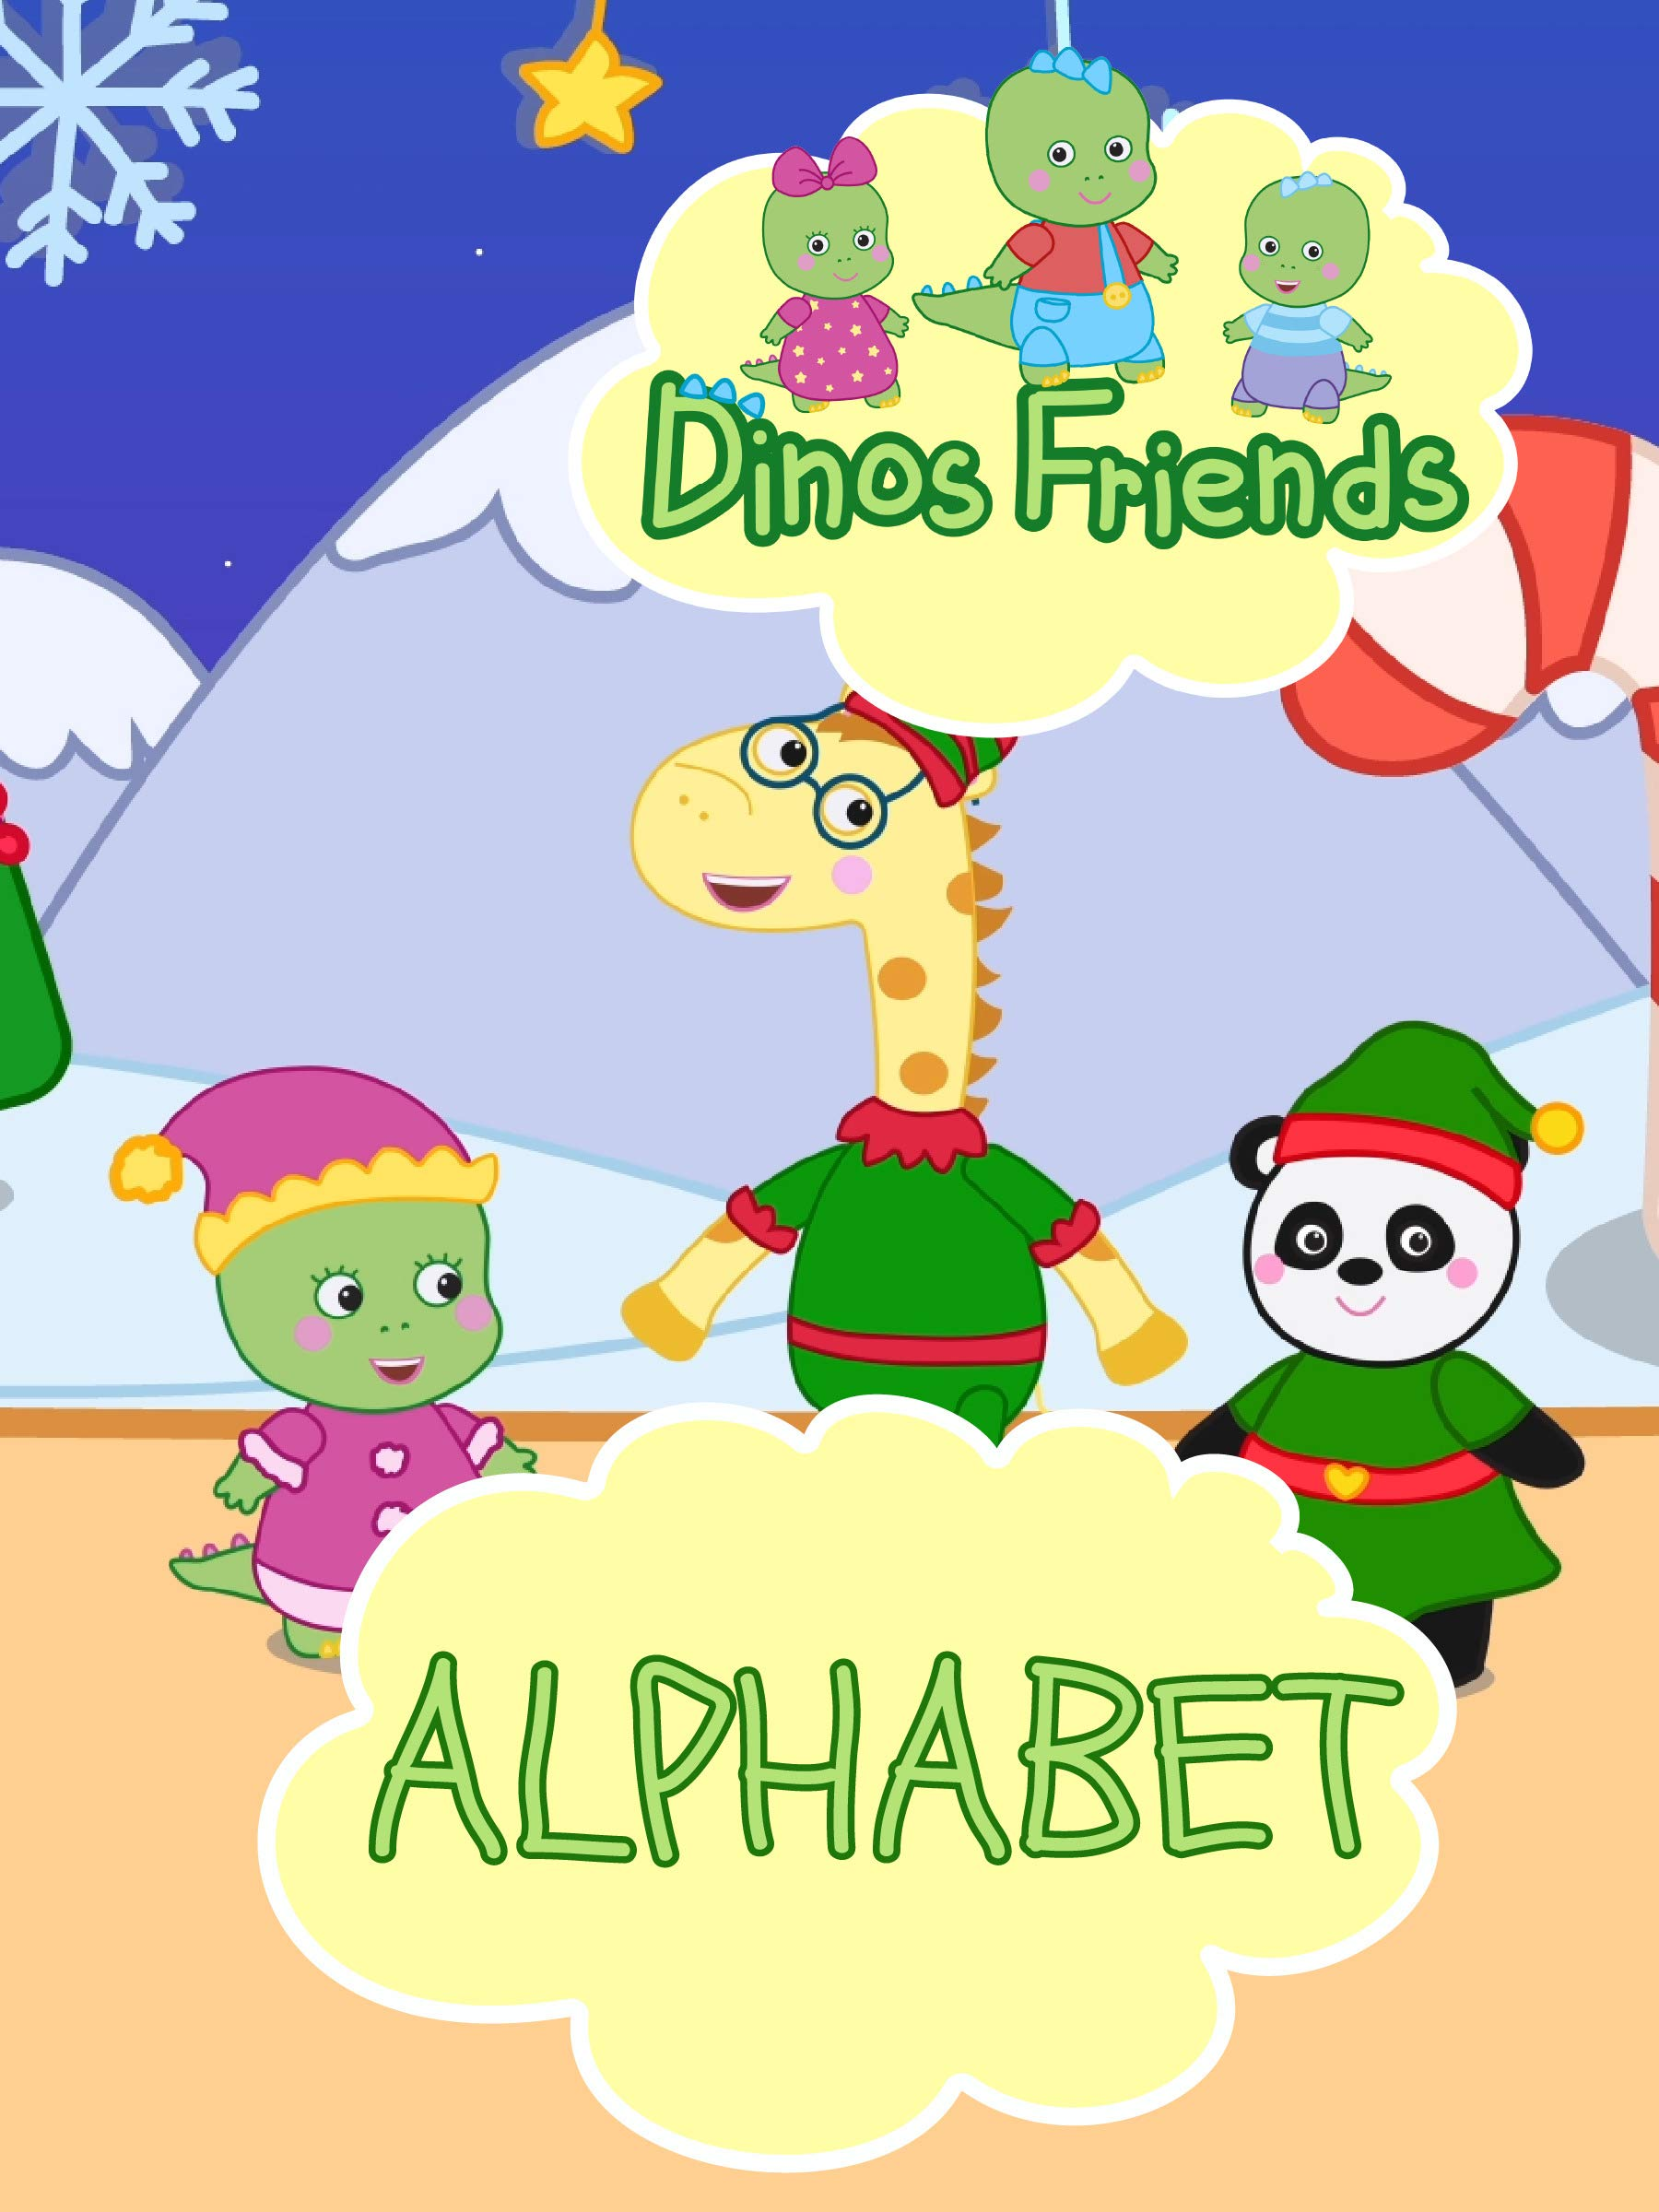 Dinos Friends - The Alphabet (Russian Alphabet)